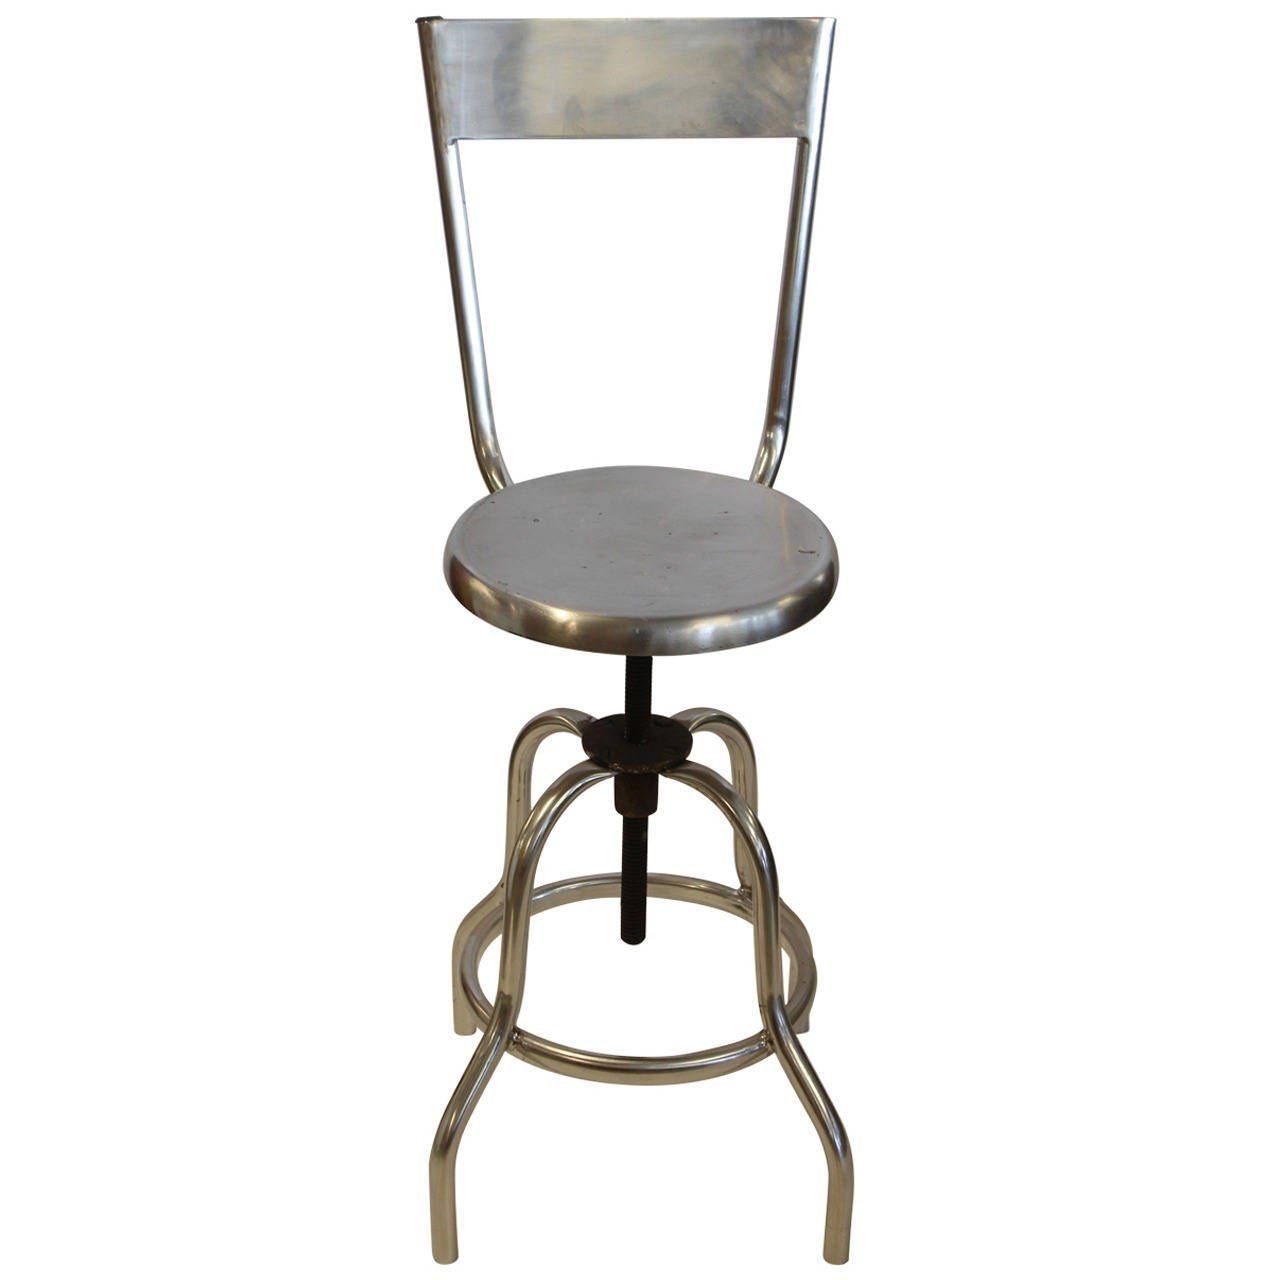 Vintage Industrial Swivel Adjustable Stool For Sale At 1stdibs